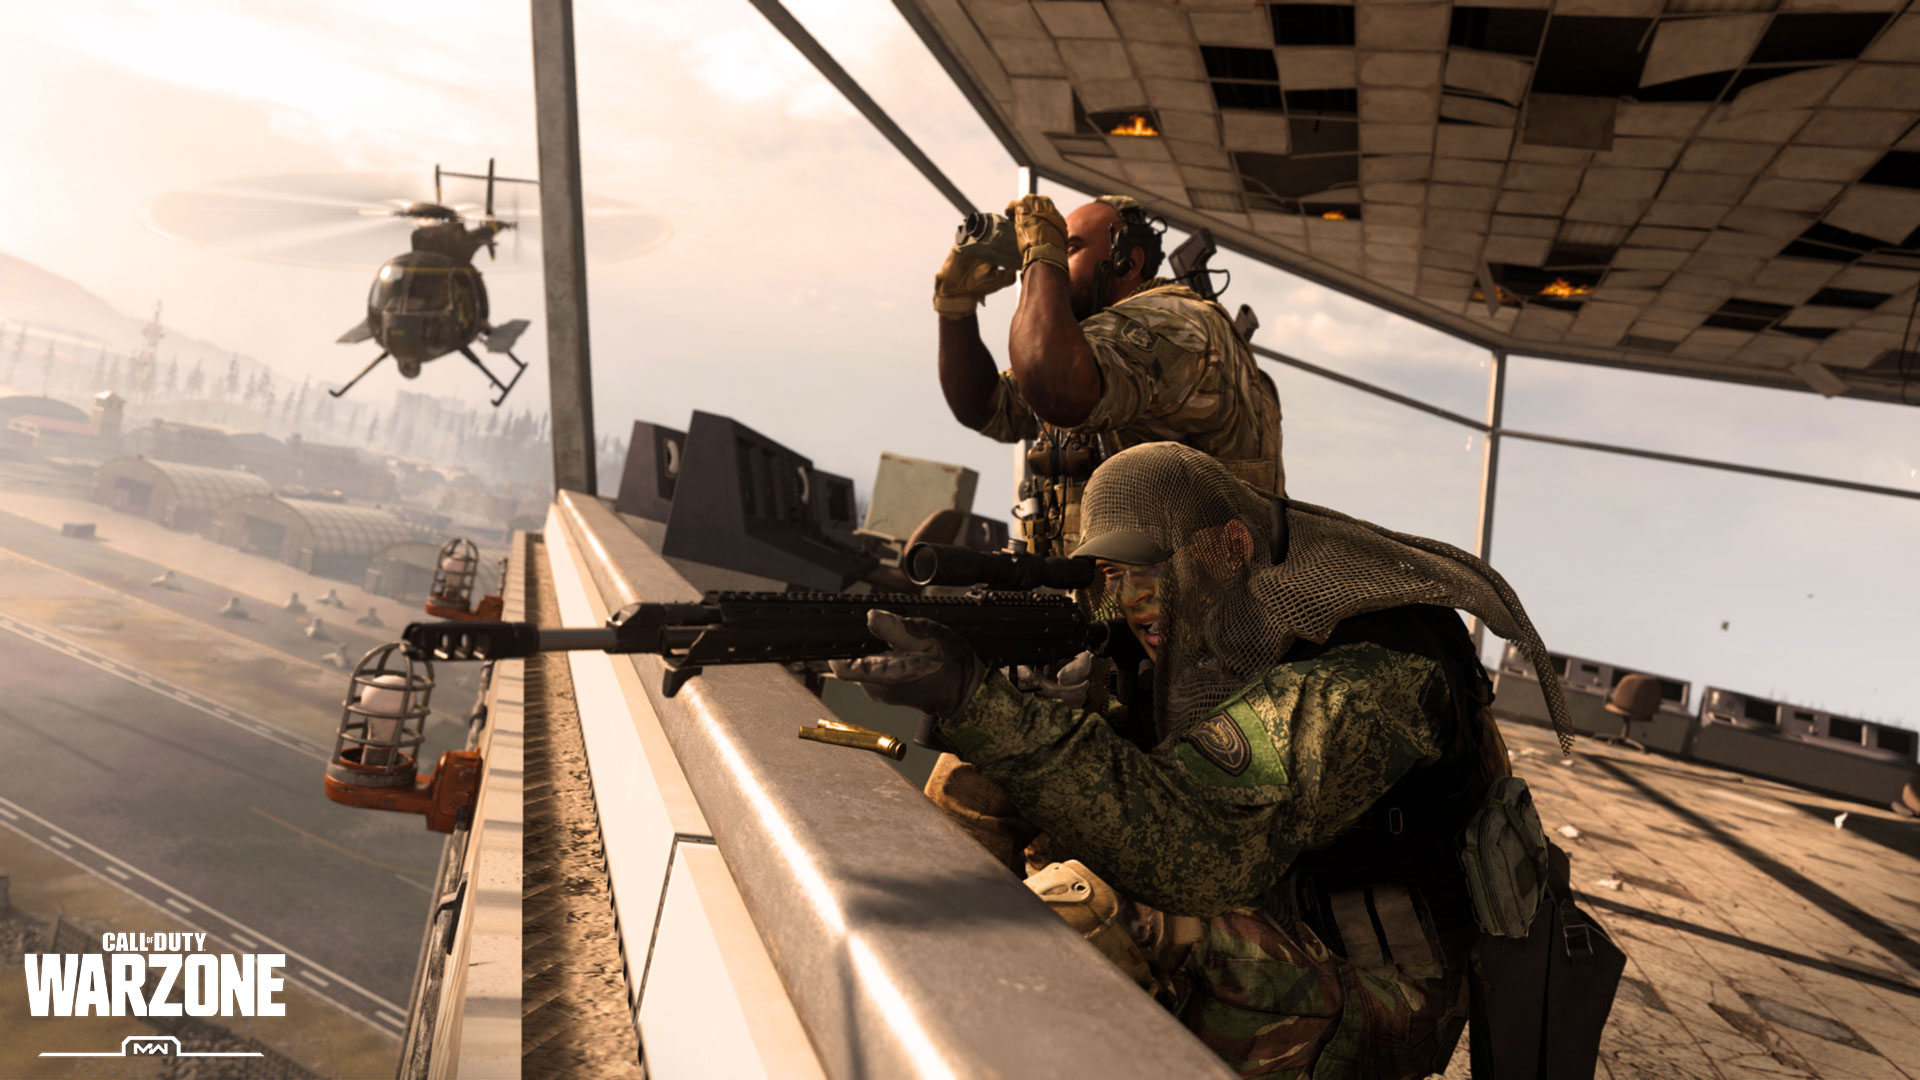 Call of Duty Warzone Mobile